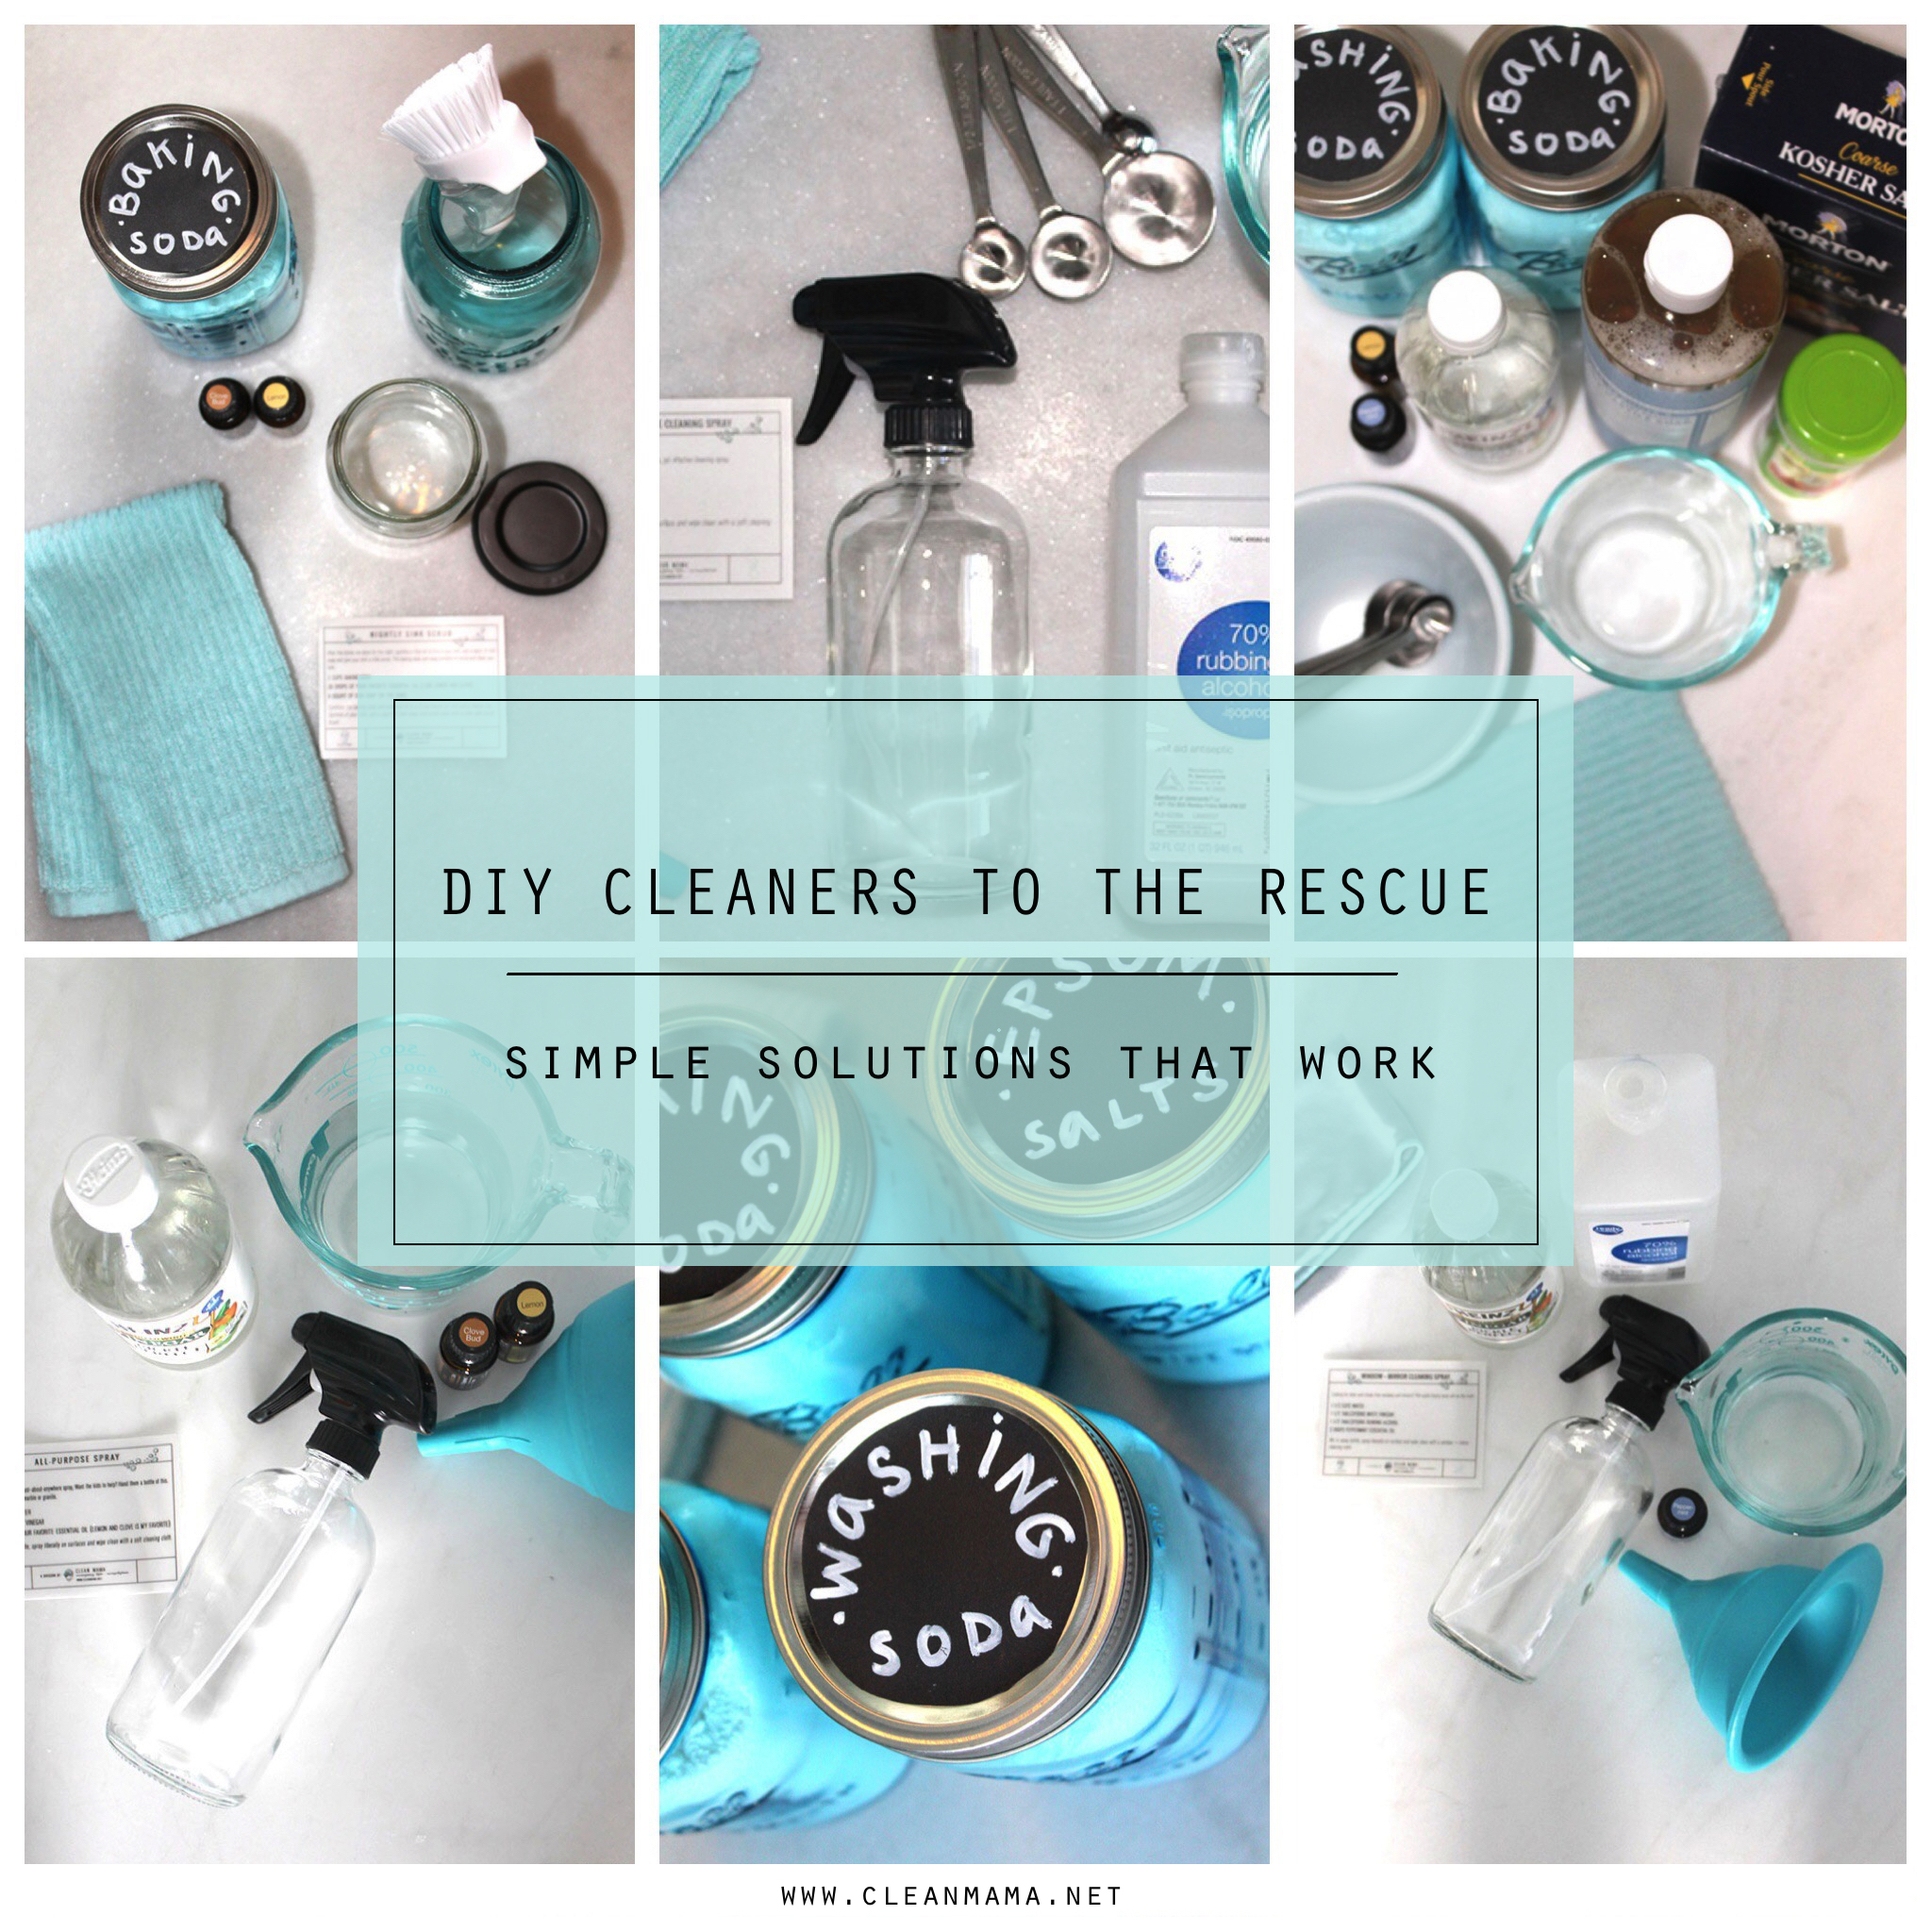 DIY Cleaners to the Rescue